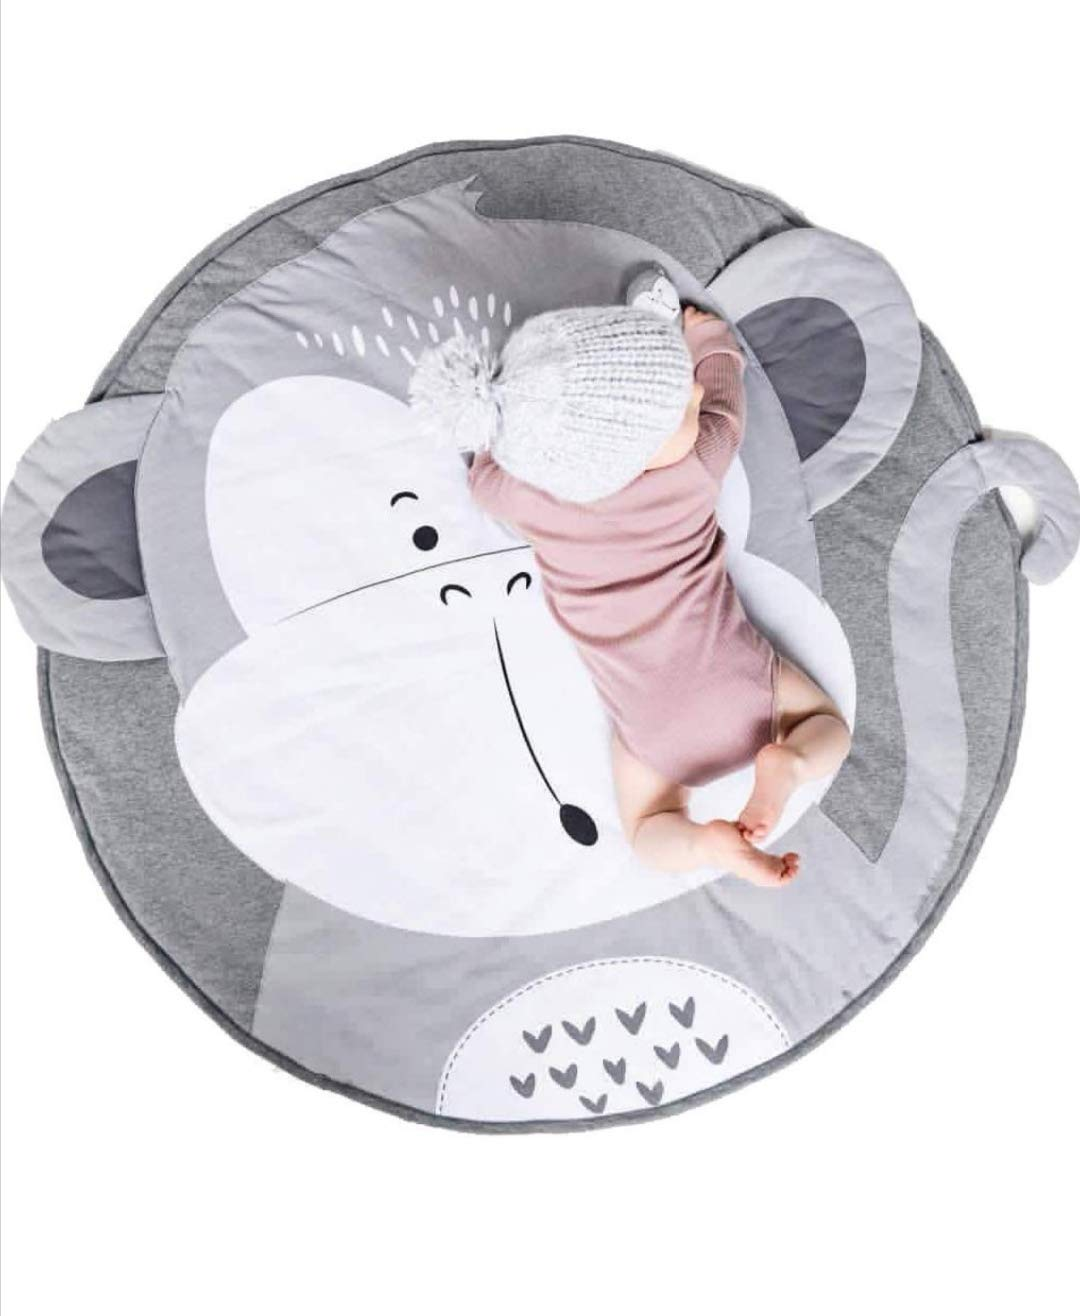 Baby Crawling Mats Round Cotton Cute Animal Pattern Nursery Rug Baby Floor Game Mat Infant Child Activity Playmat